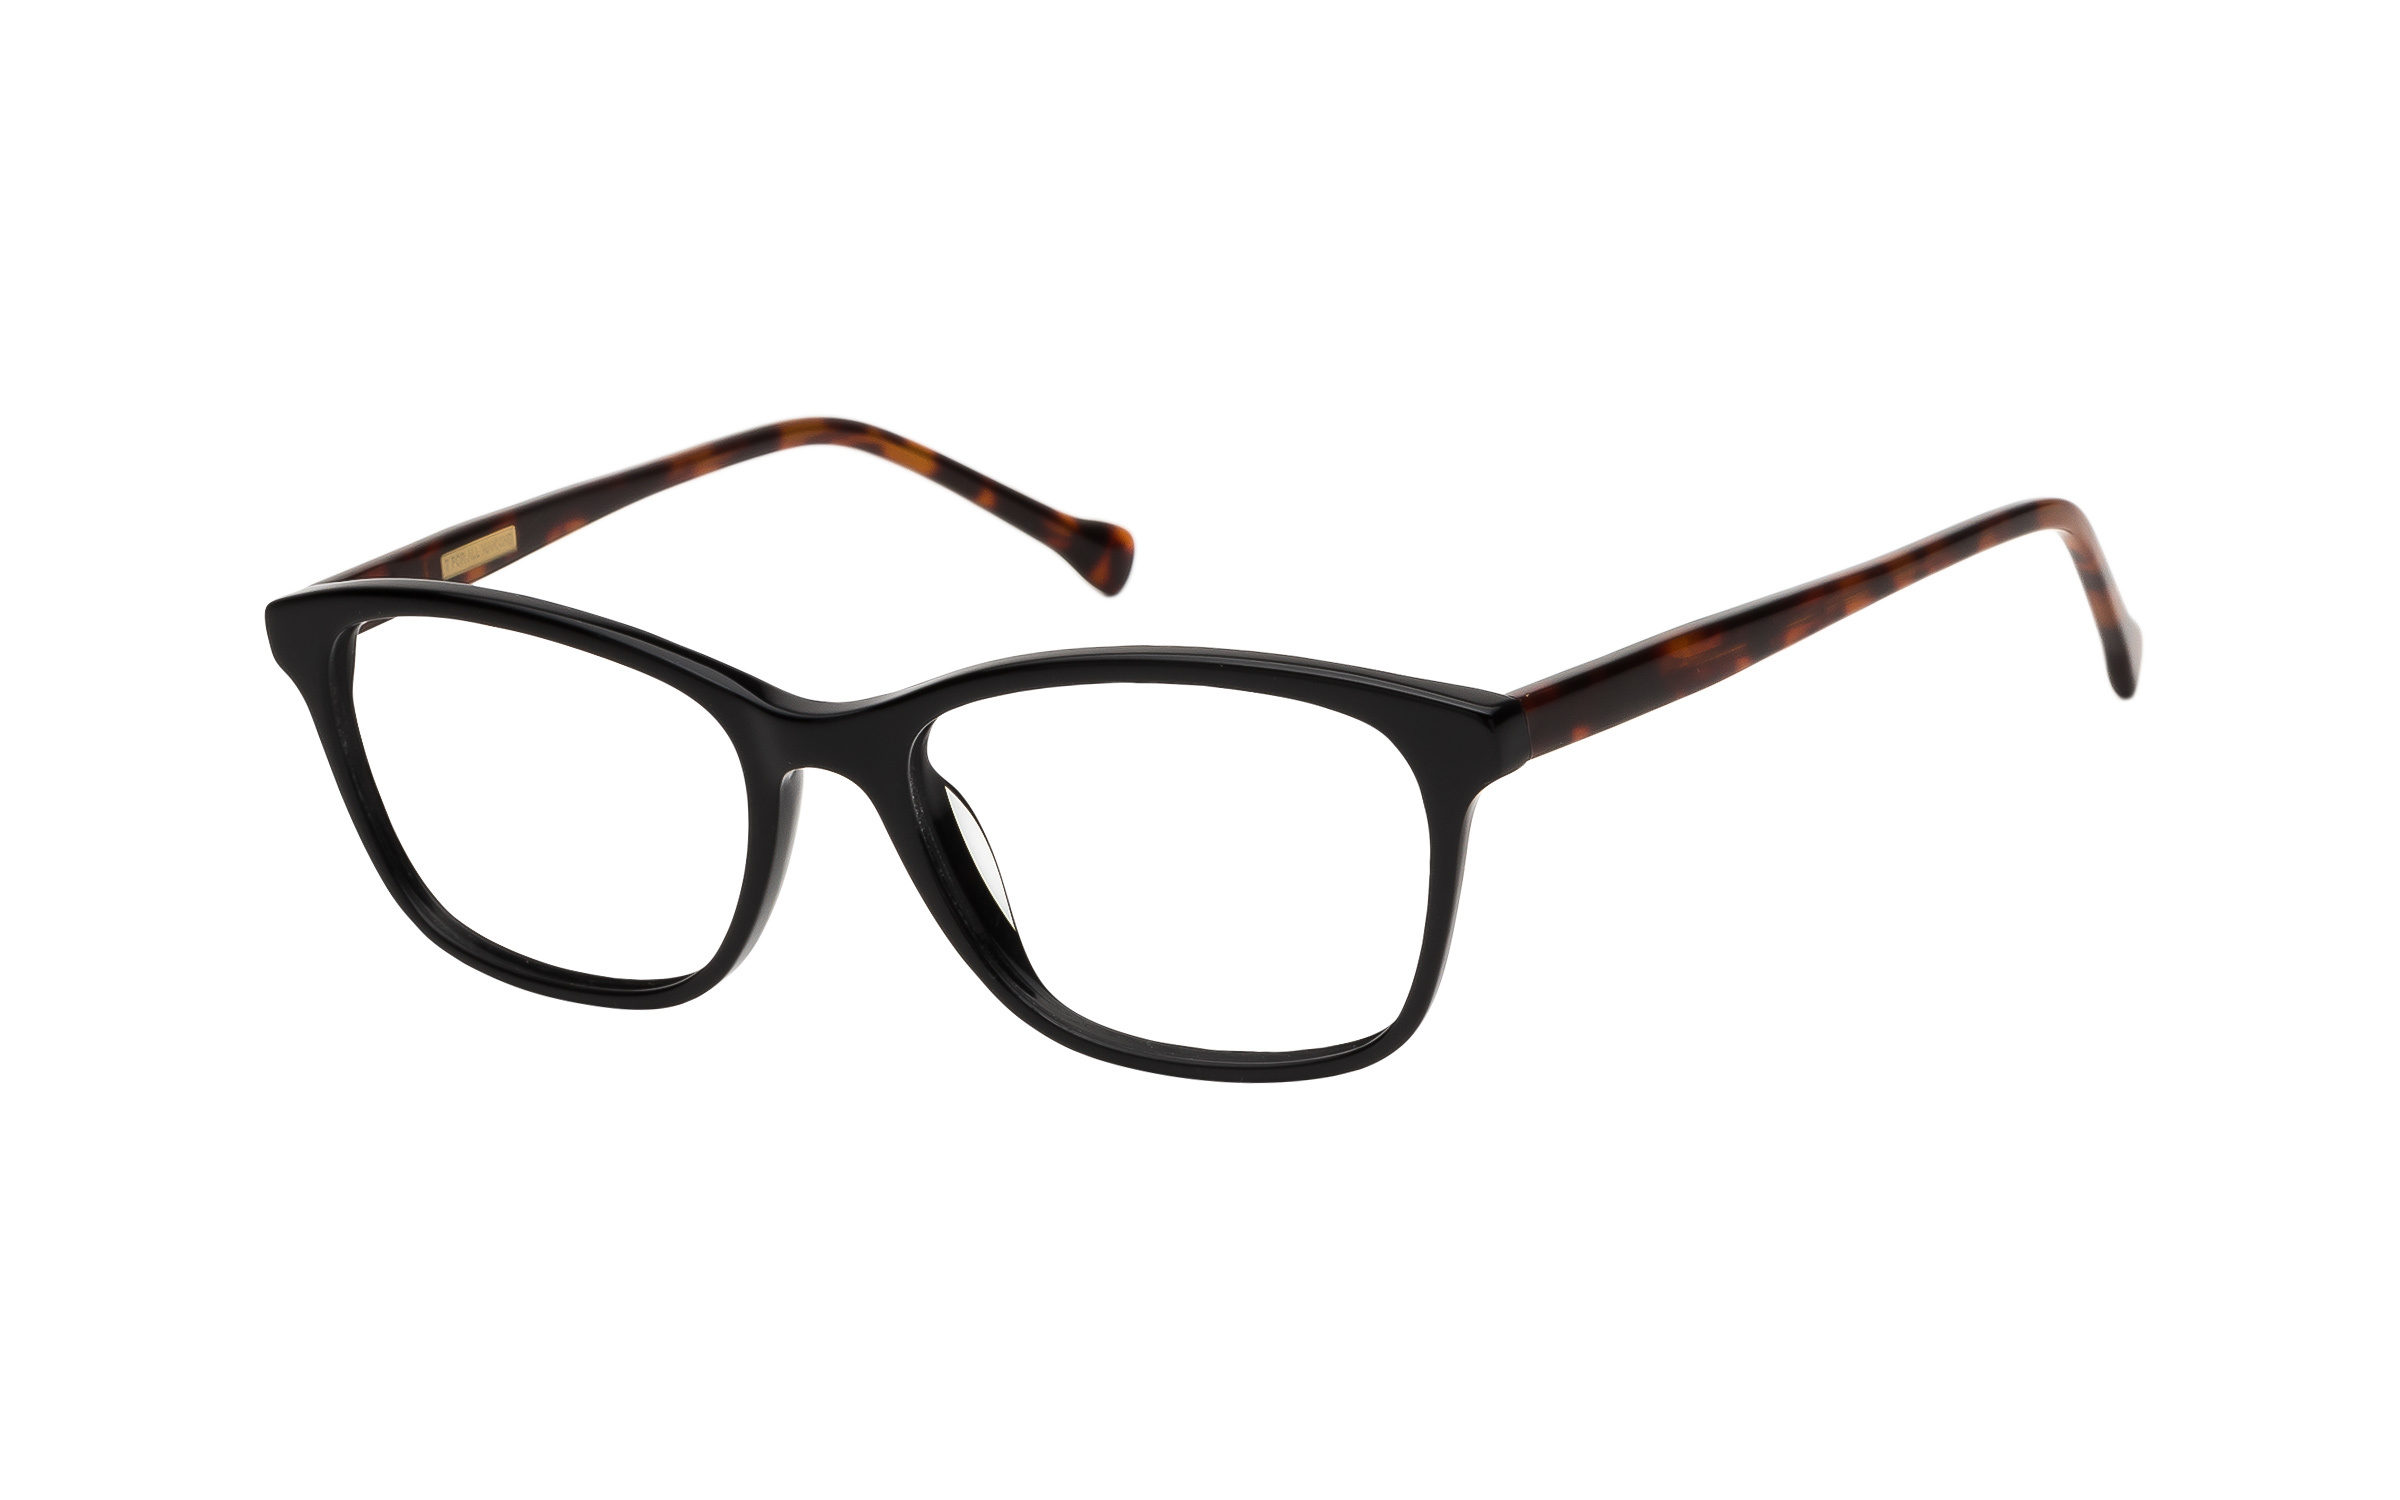 7 for All Mankind Glasses D-Frame Black/Tortoise Acetate Online Clearly